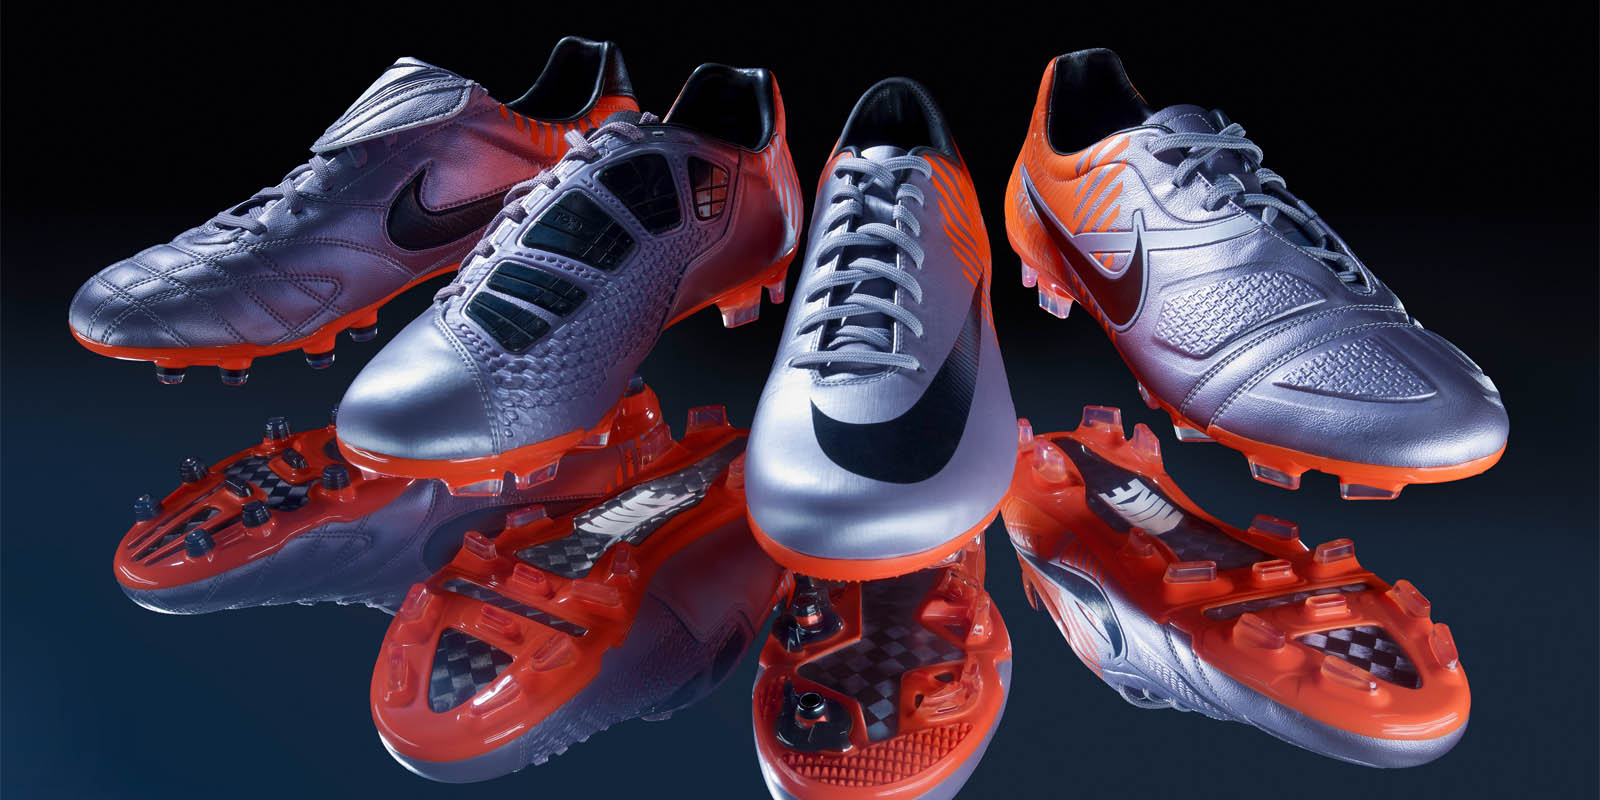 nike 2010 world cup concept tribute boots pack by swoosh